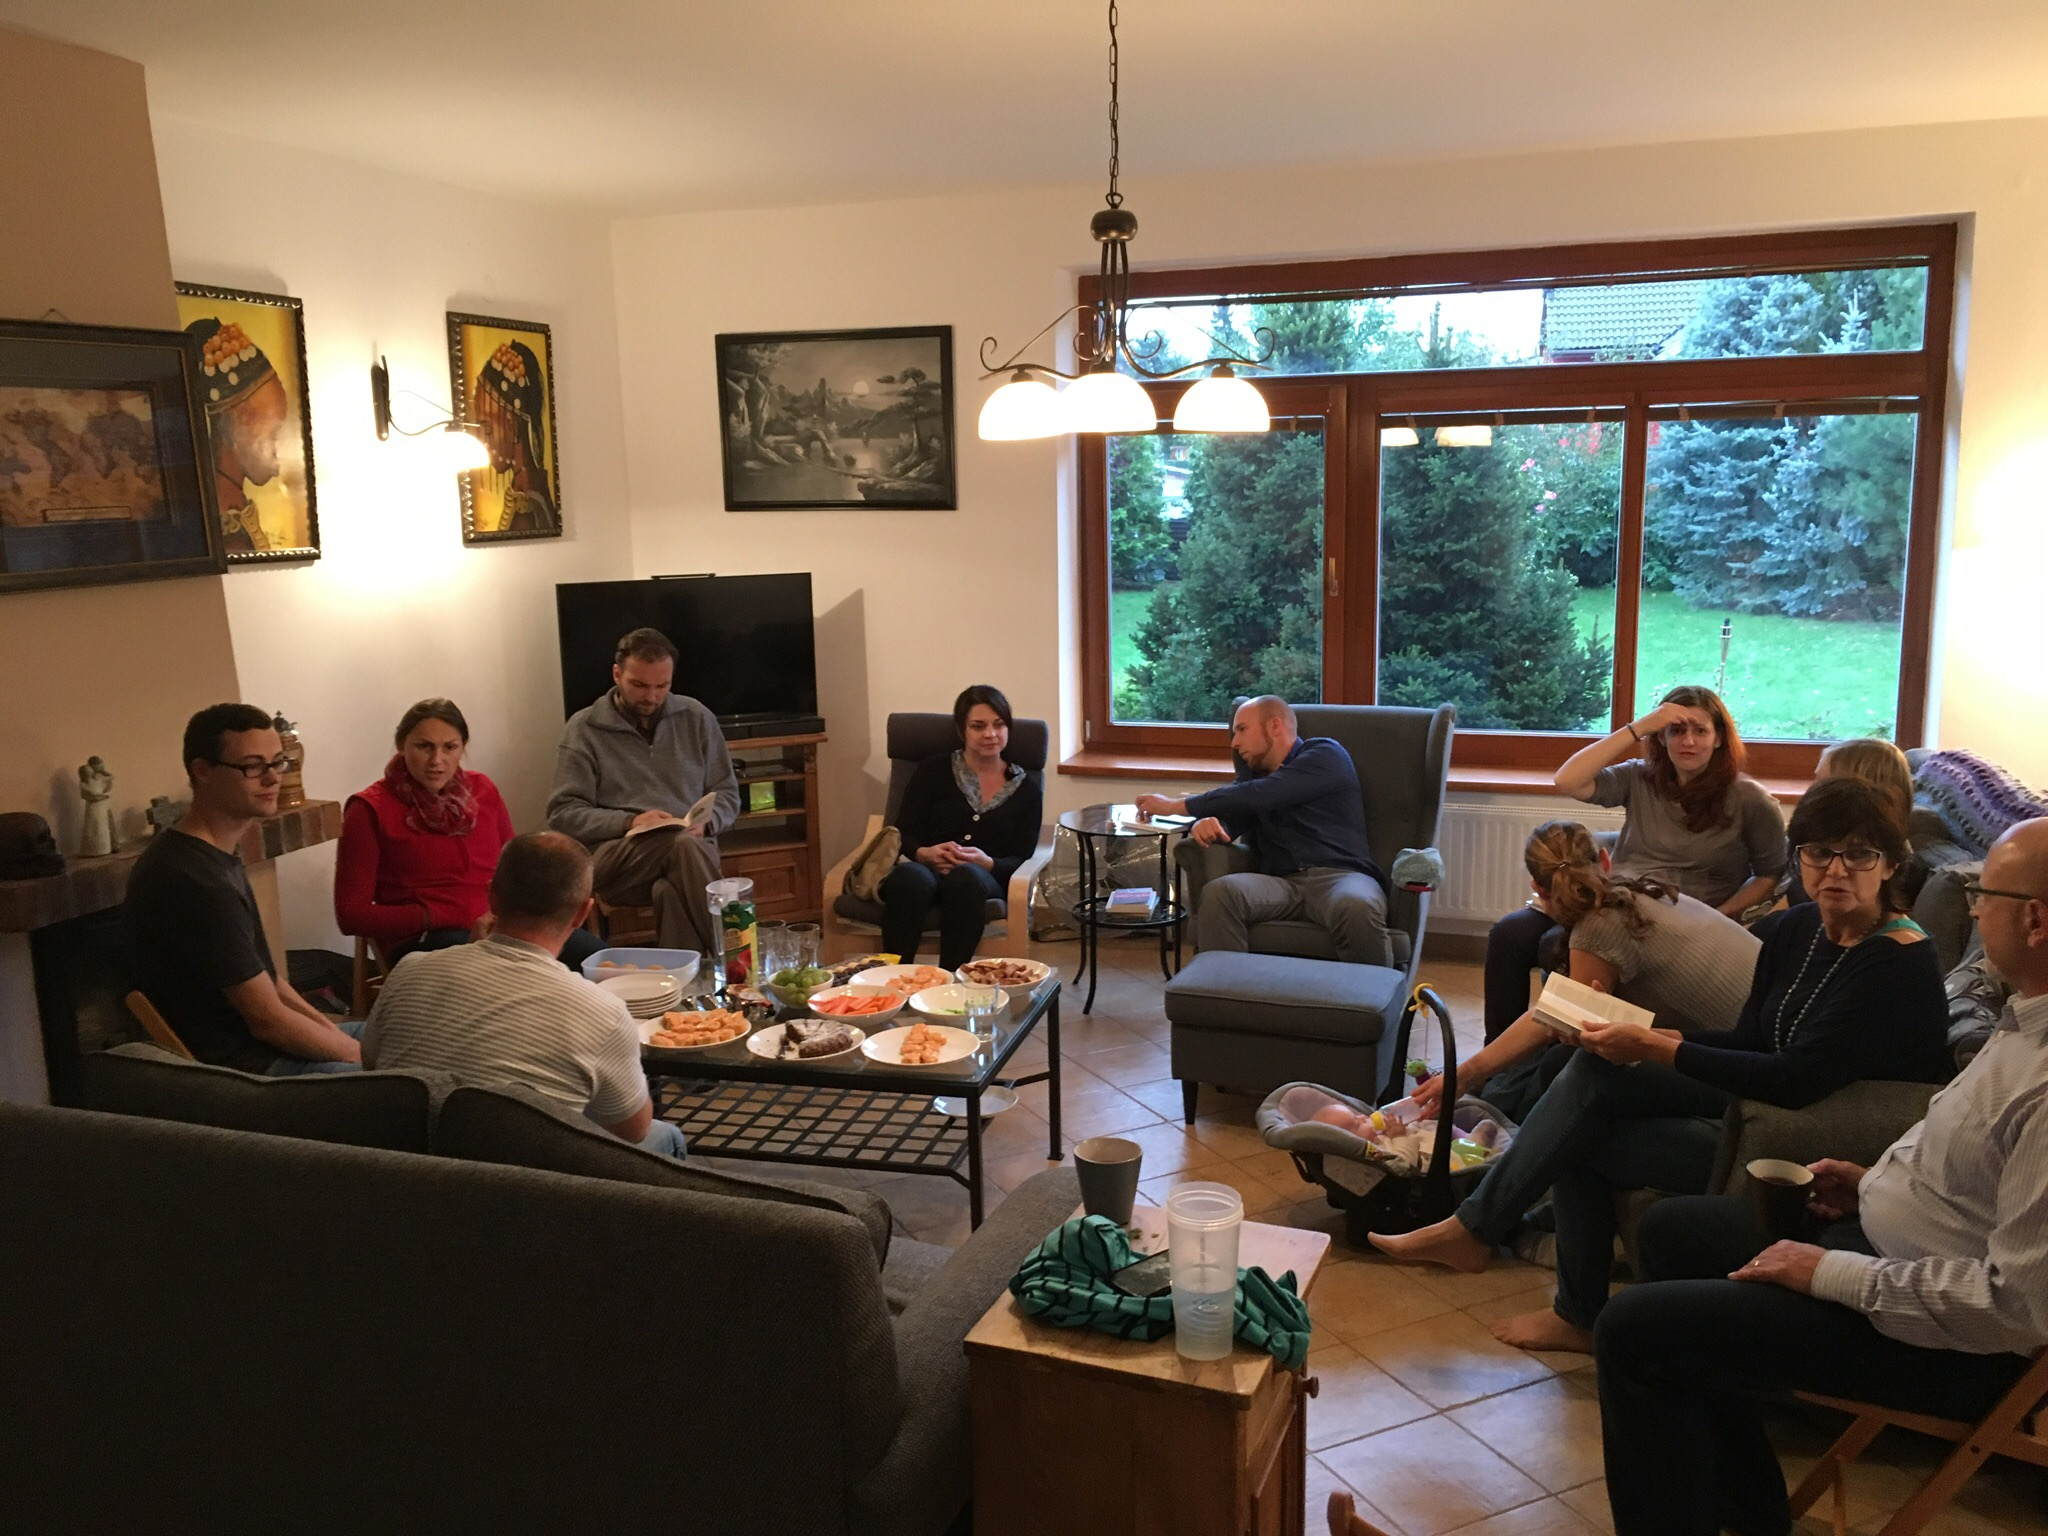 Our missional community group